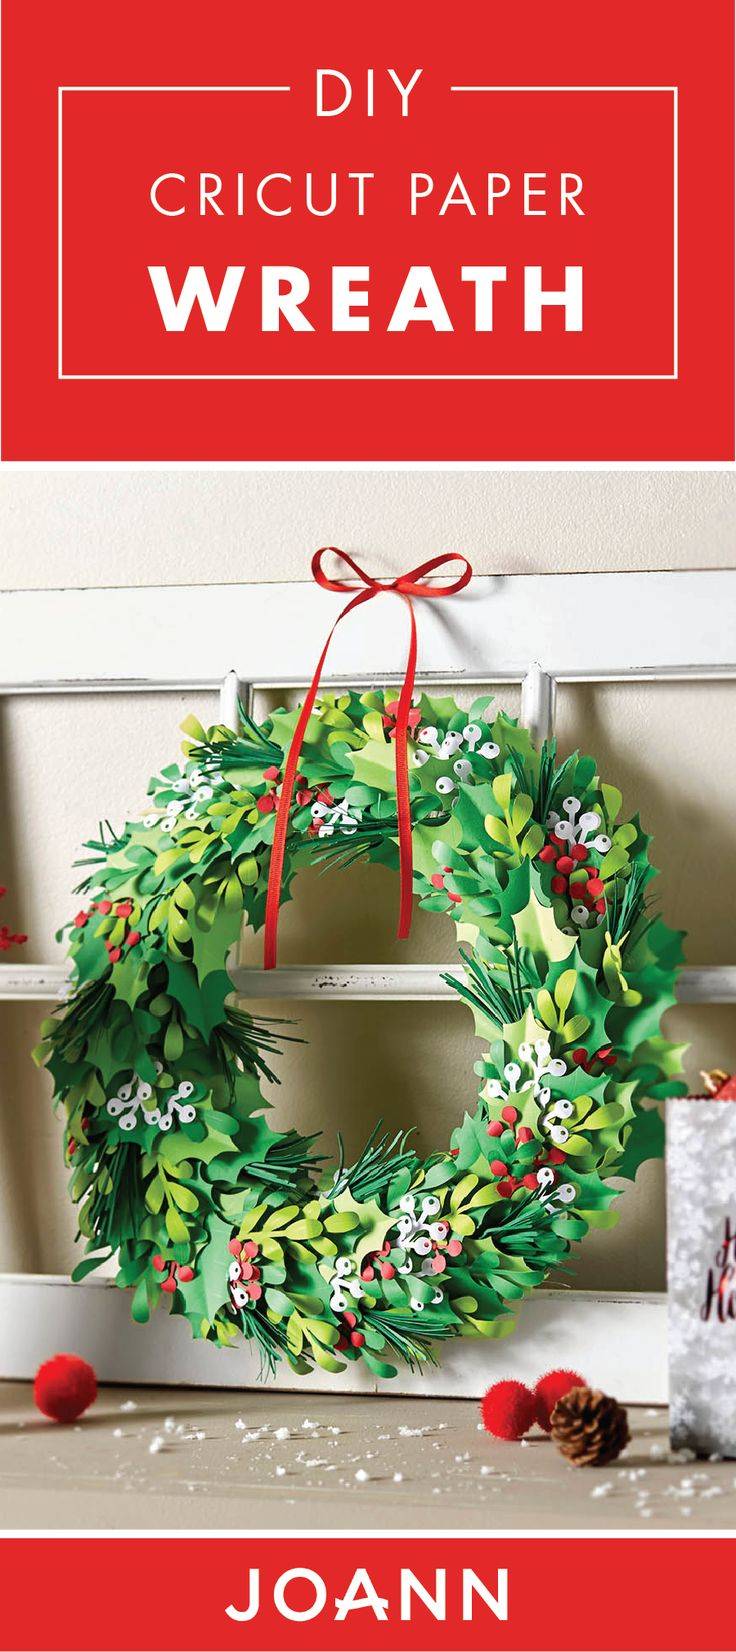 Marvelous Ready For A Holiday Decoration That Will Last Through More Than The Season?  Check Out This DIY Cricut Paper Wreath From JOANN! Decorate Any Room Of  Your ...